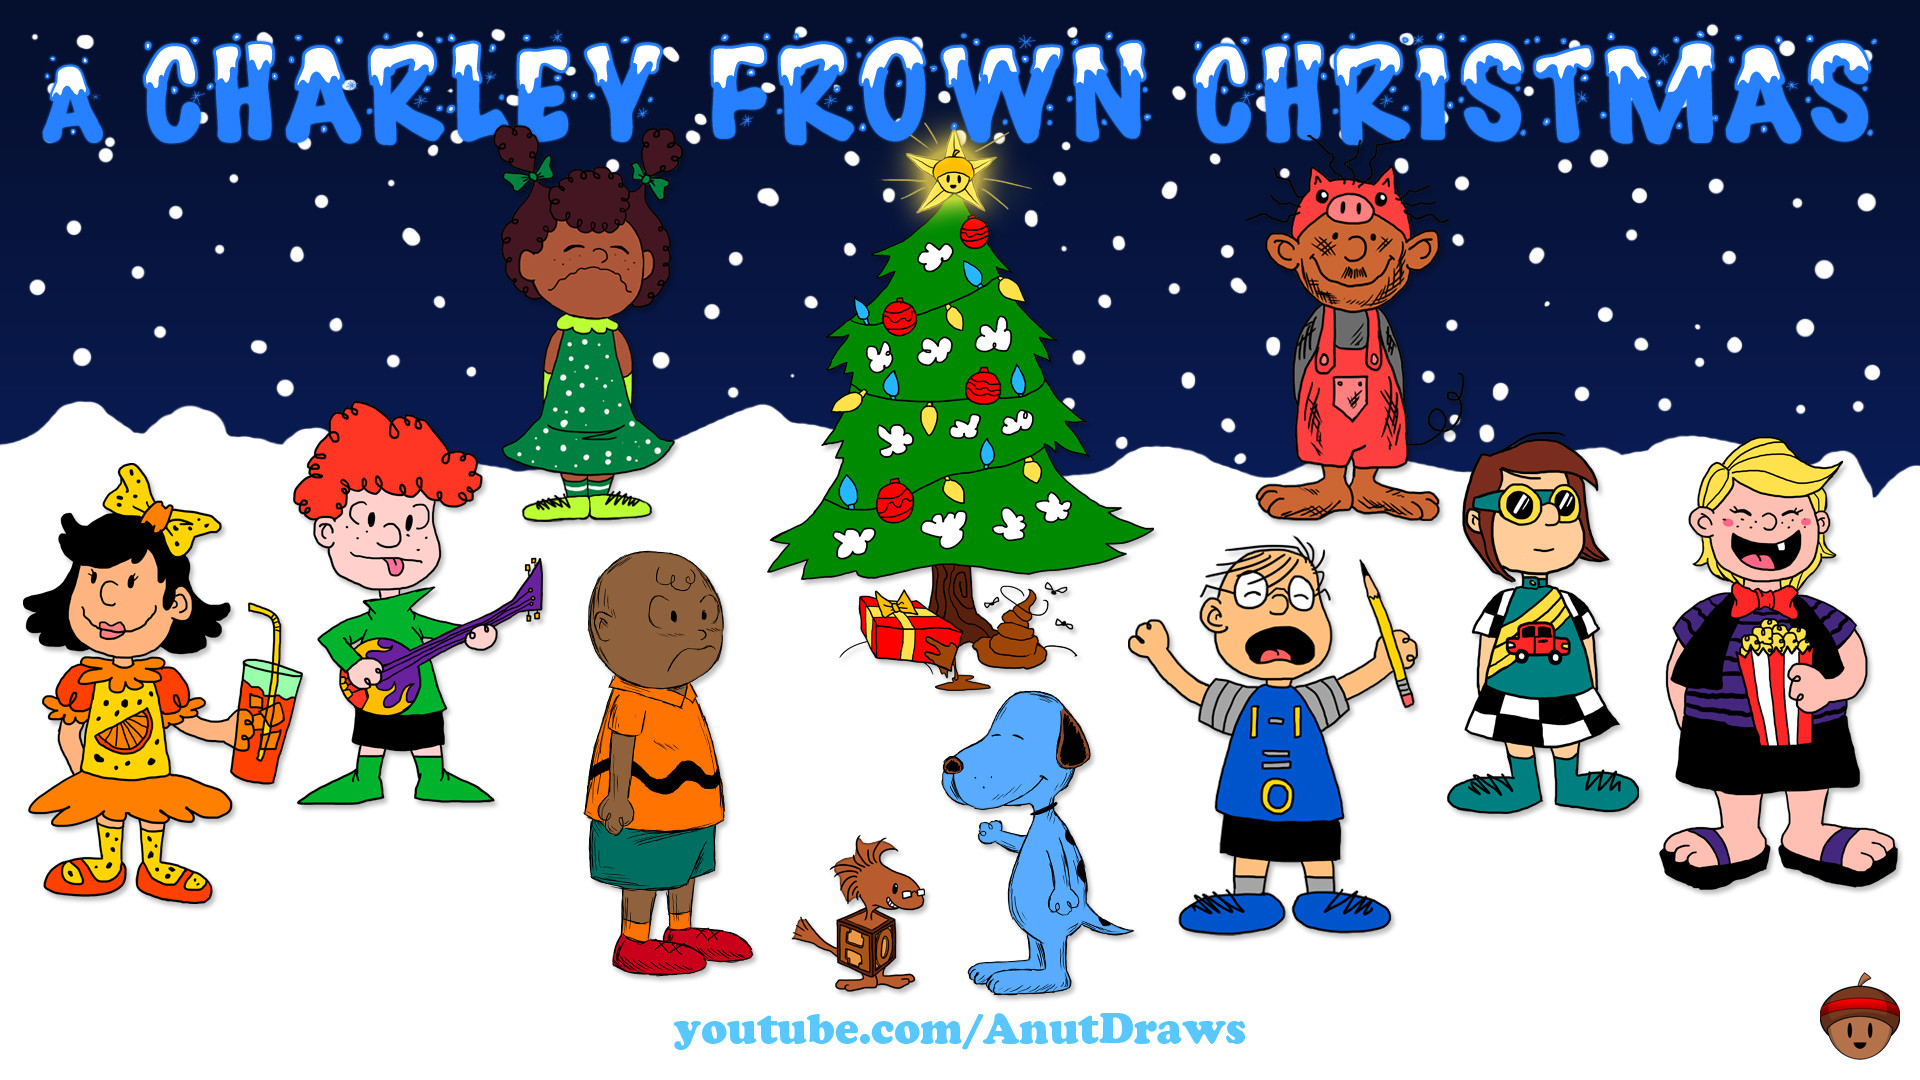 1920x1080 Snoopy Christmas Wallpaper Widescreen - WallpaperSafari · charlie brown  thanksgiving wallpaper widescreen ...